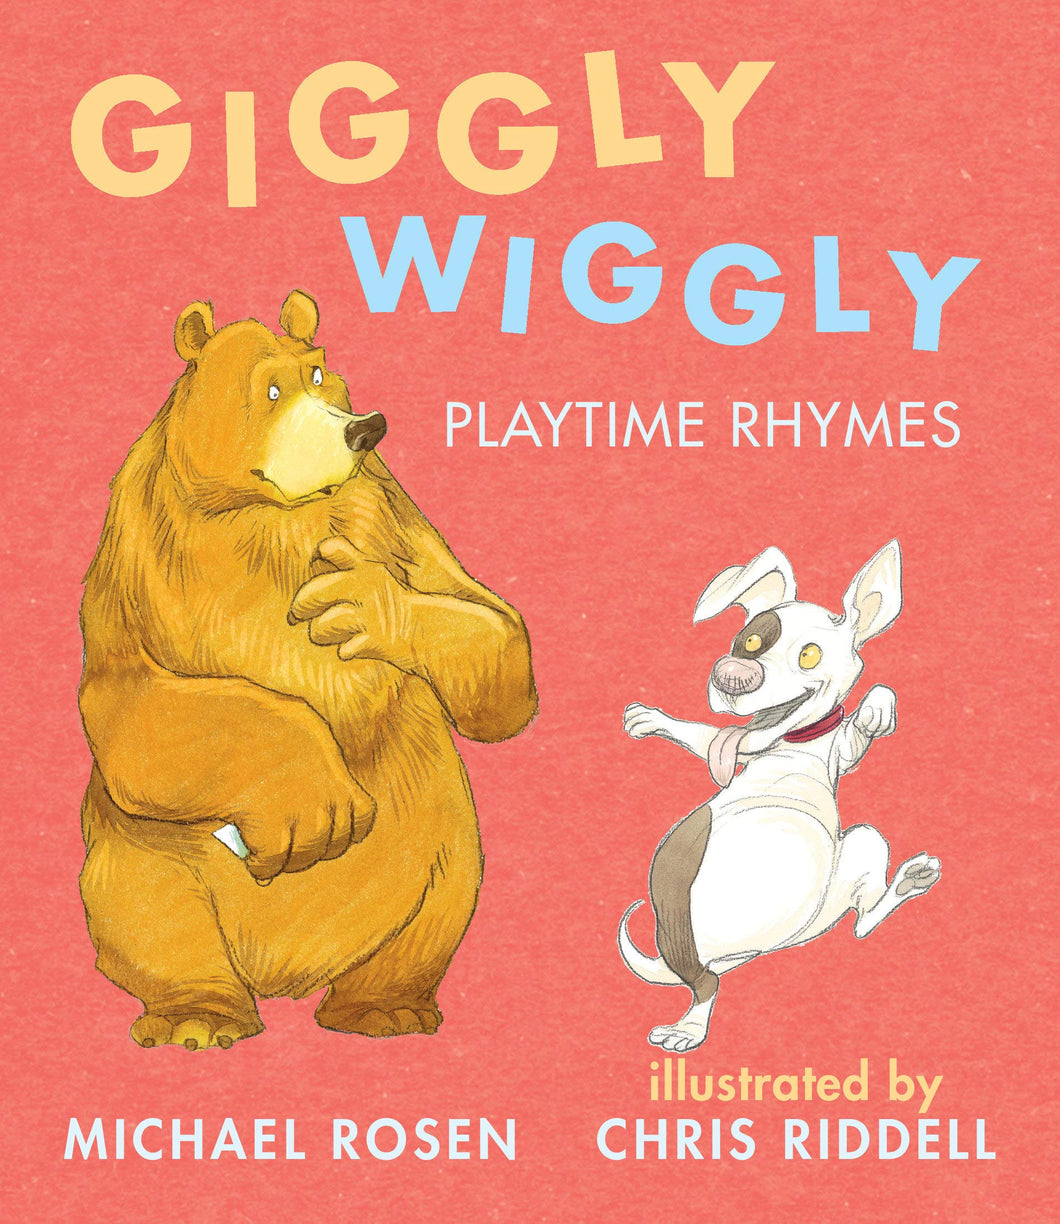 Giggly Wiggly: Playtime Rhymes